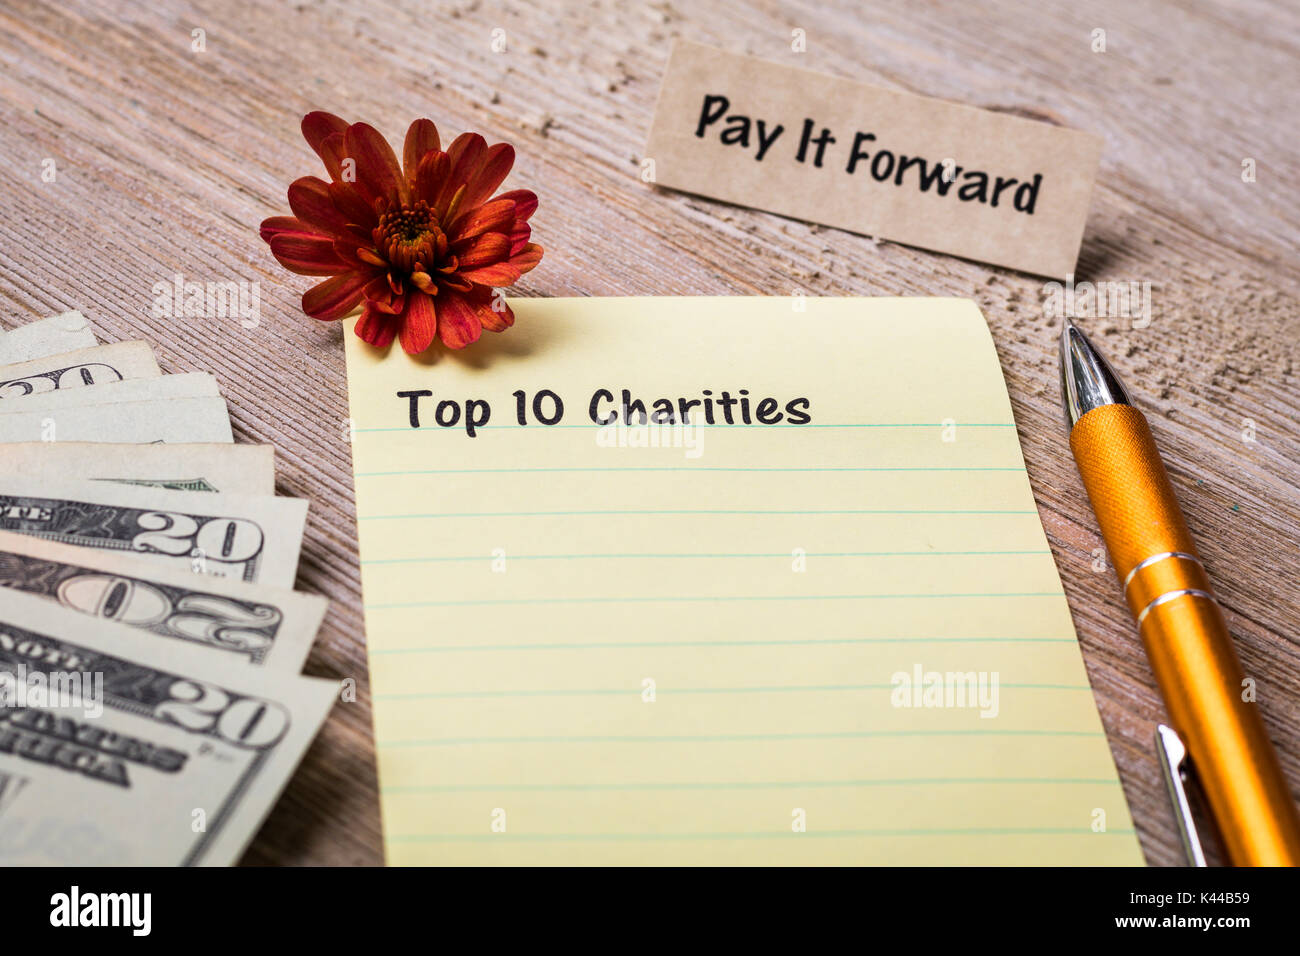 Charity and Donation concept on notebook and wooden board Stock Photo